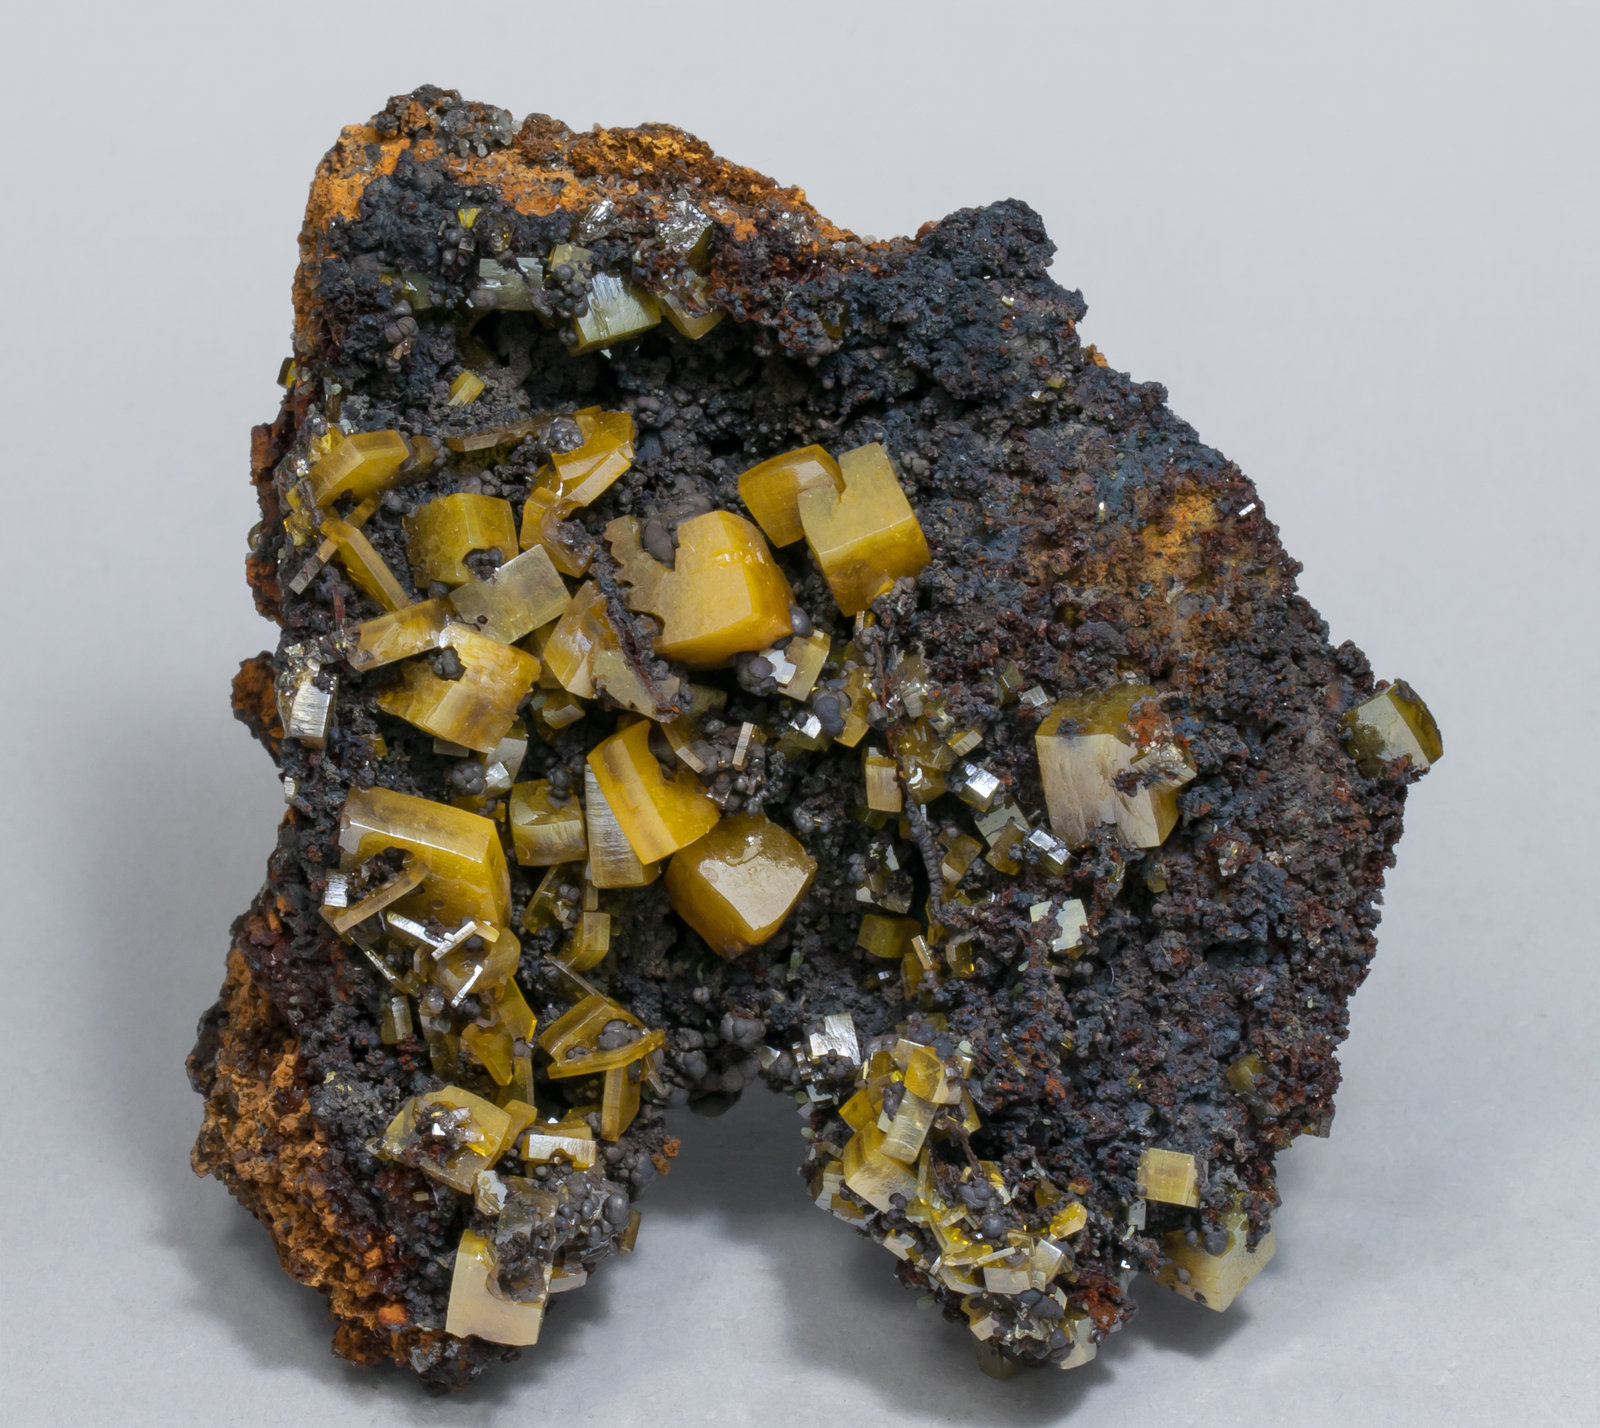 specimens/s_imagesAD5/Wulfenite-TG16AD5f.jpg